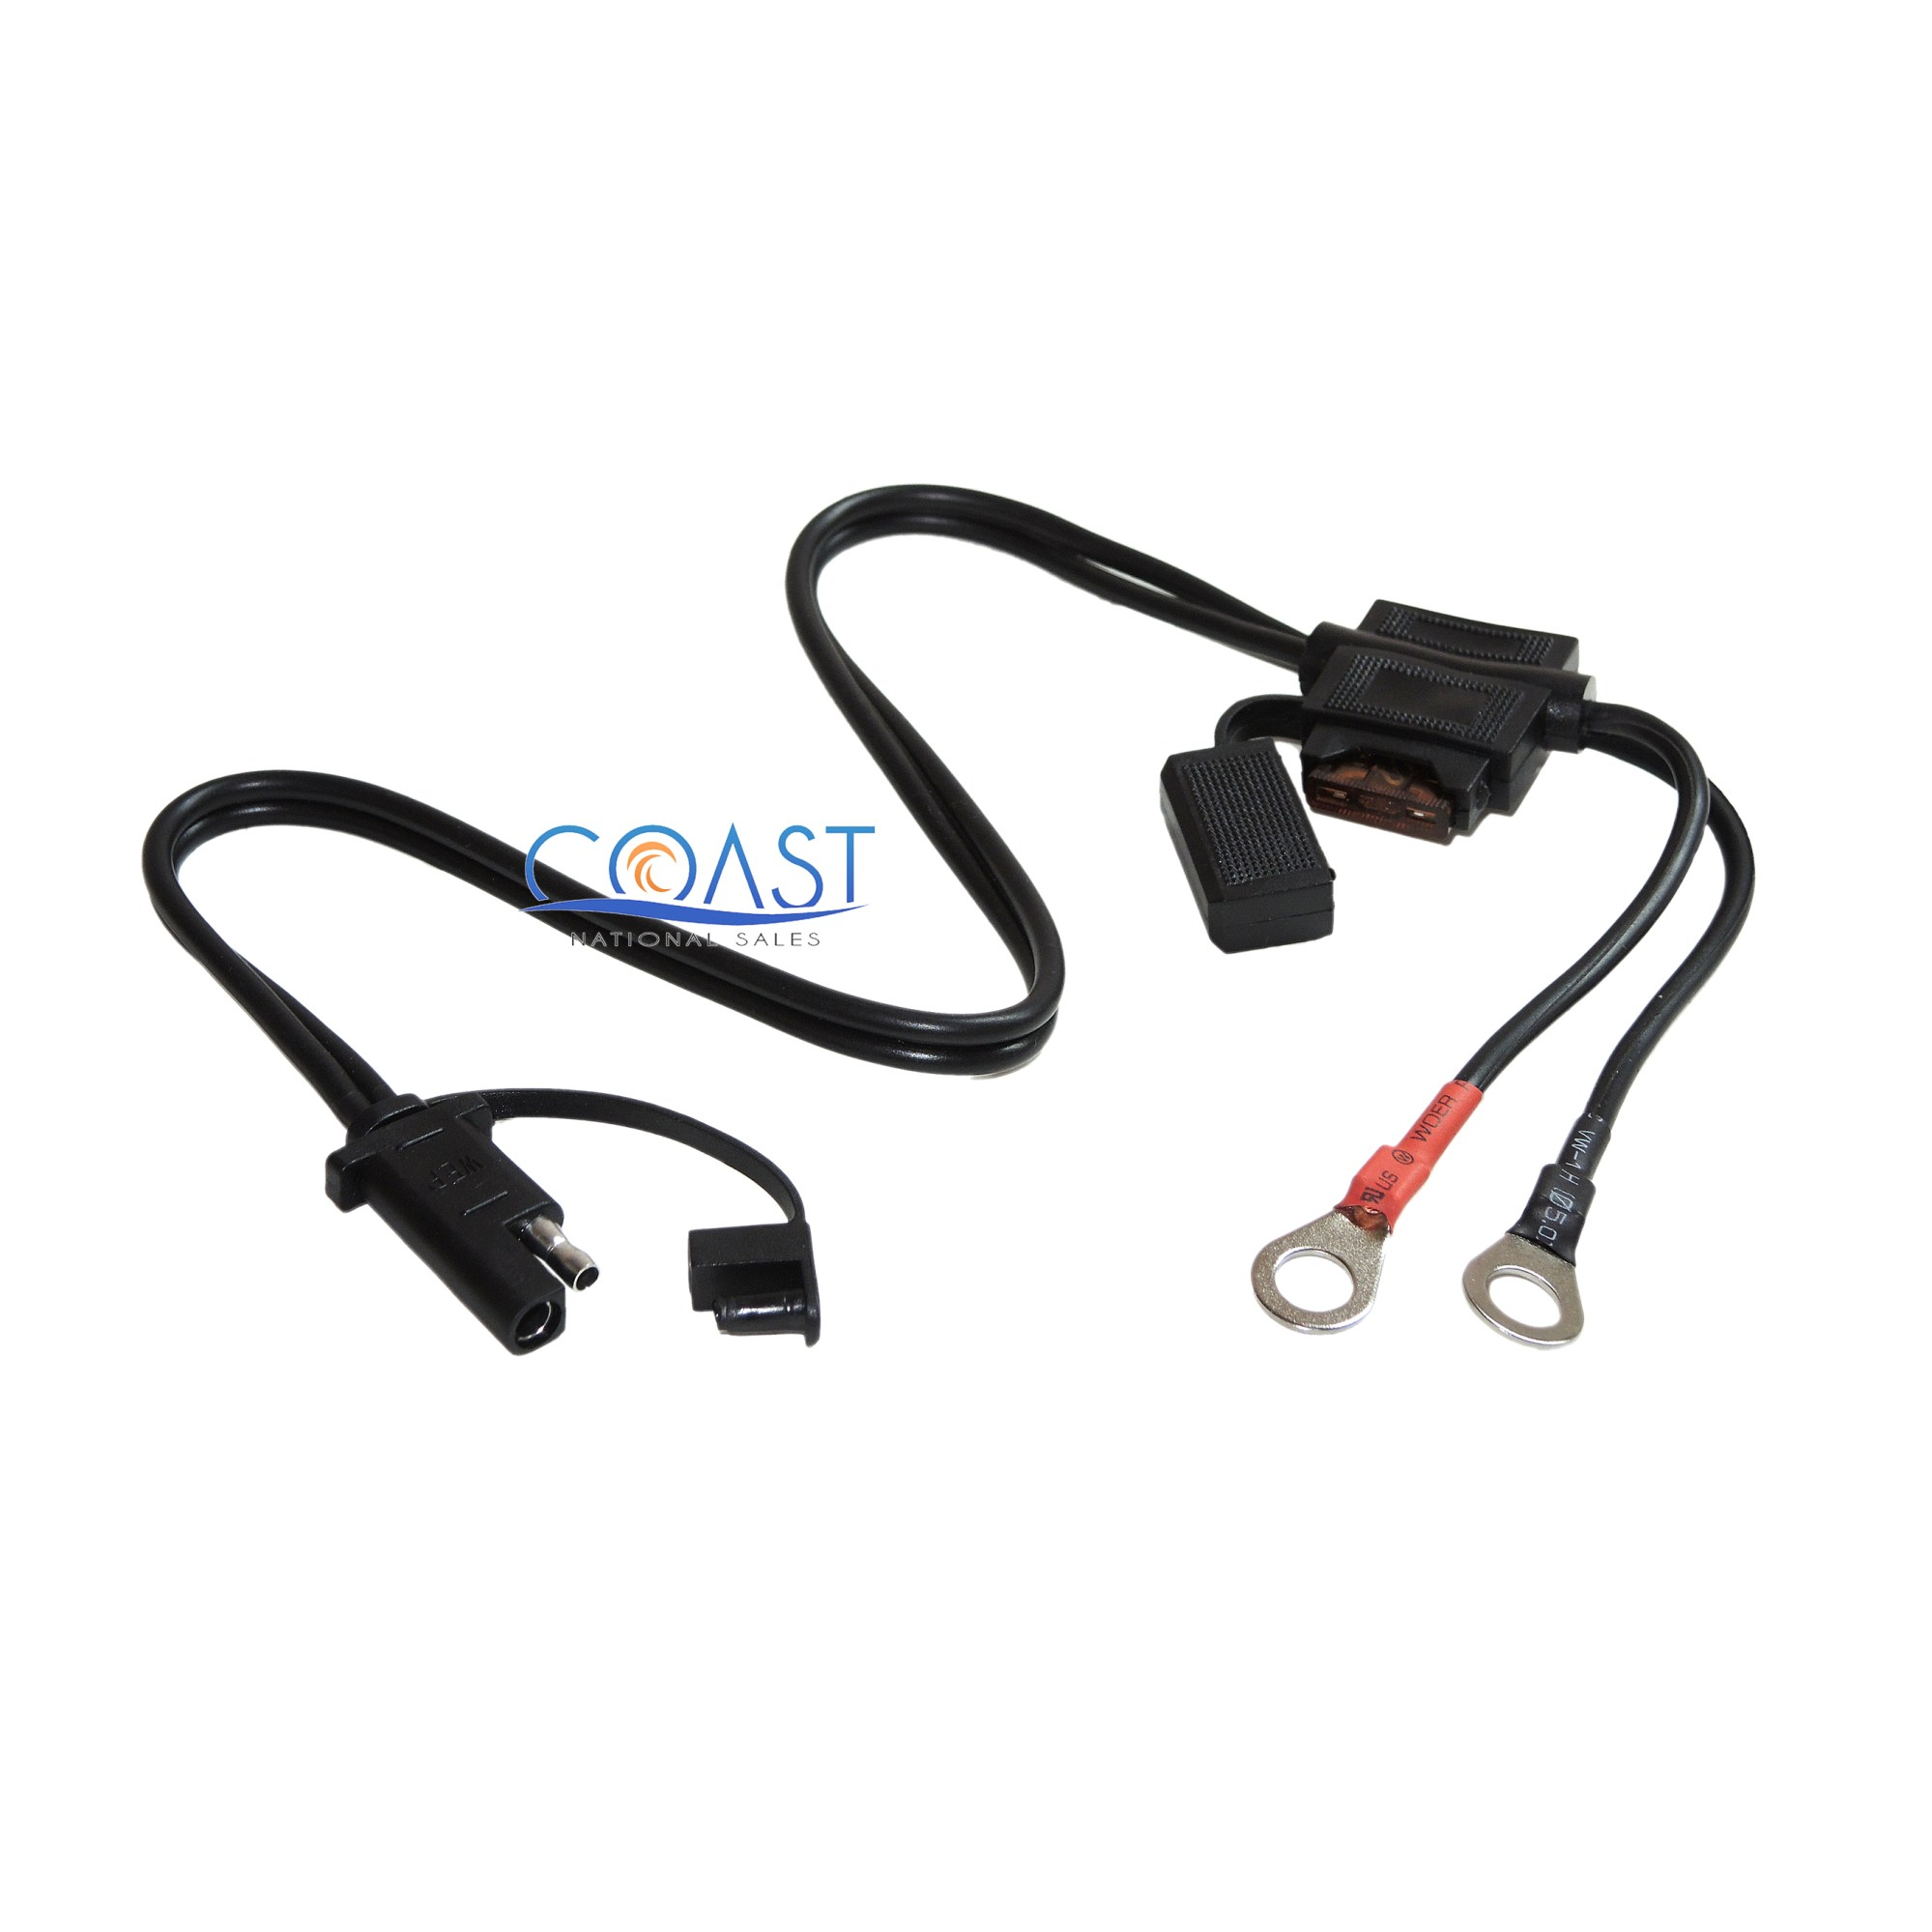 hight resolution of quick connect battery wire harness snap cord ring charger terminaldetails about quick connect battery wire harness